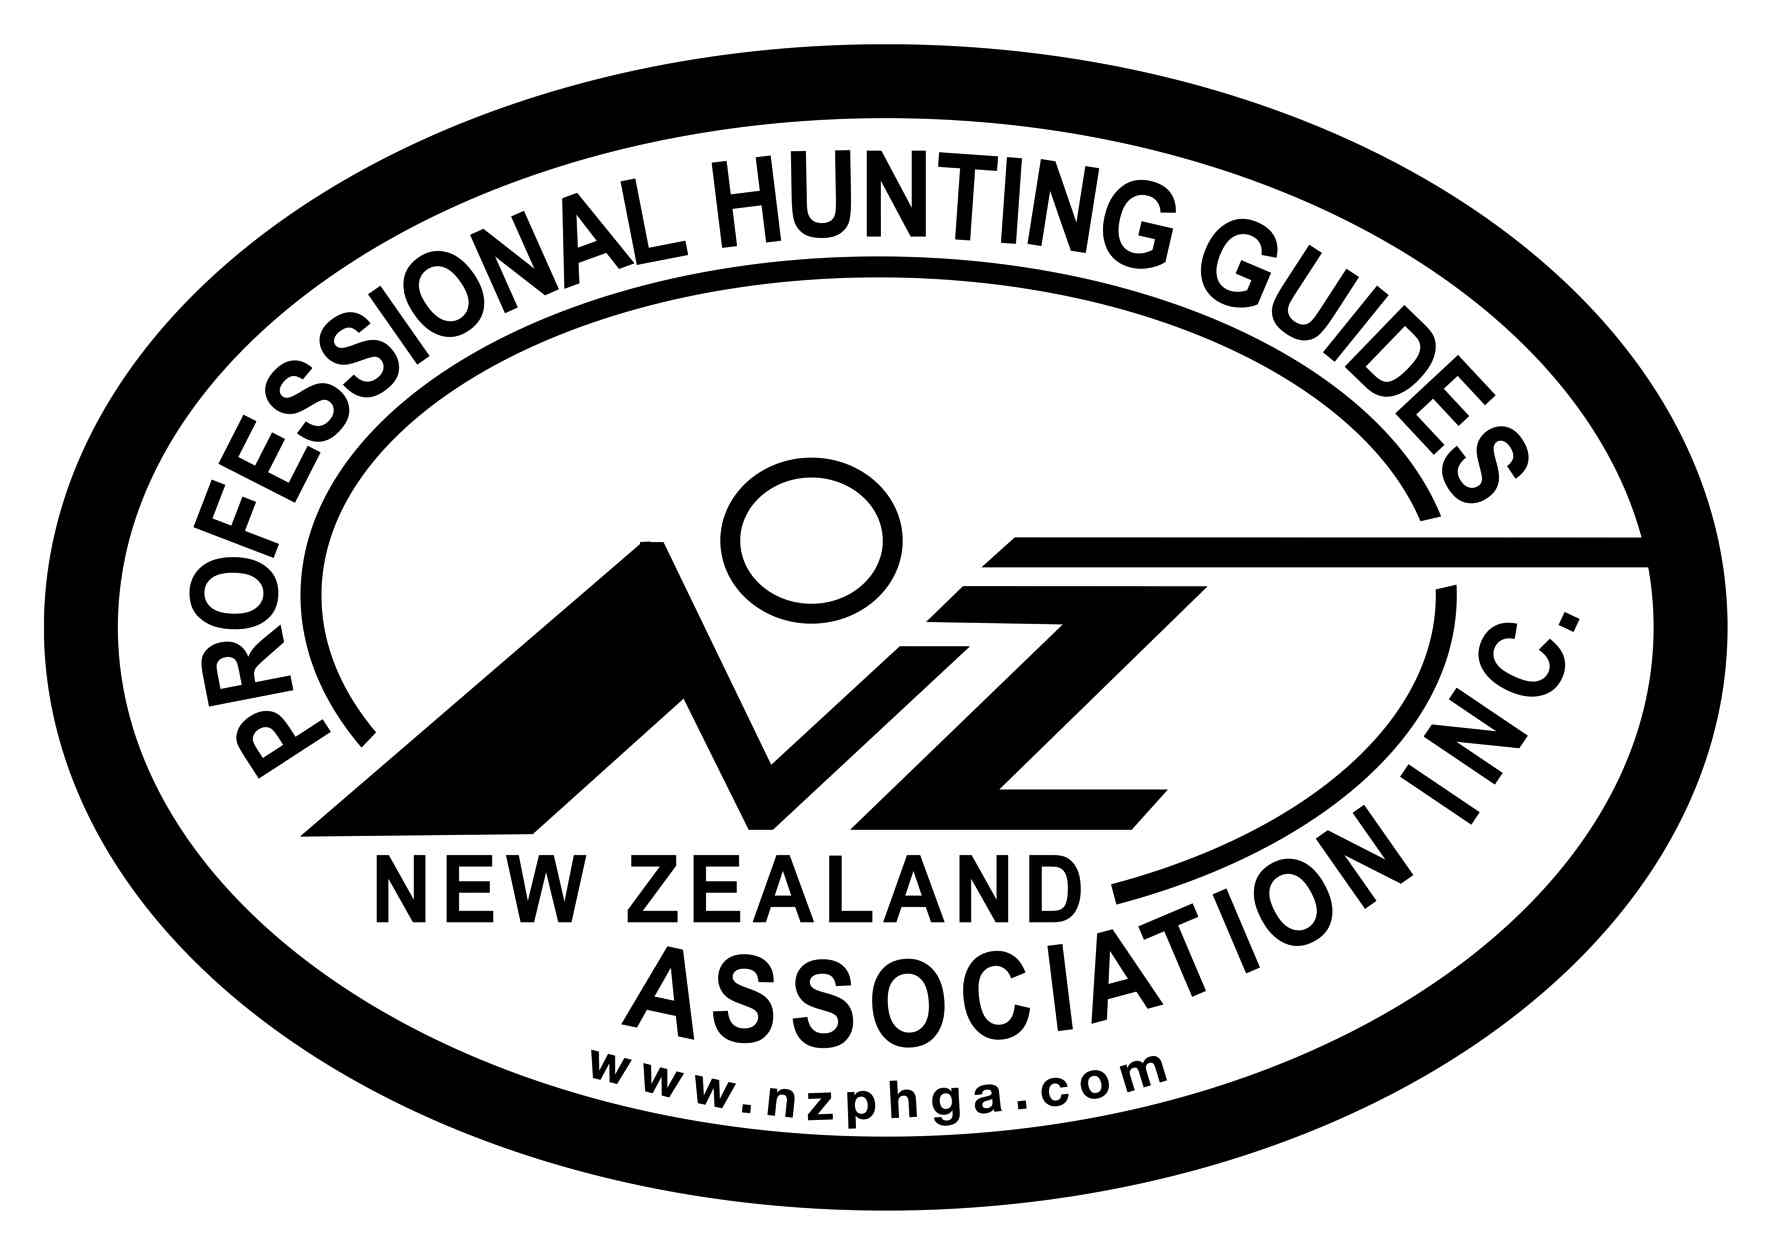 Professional Hunting Guides Association New Zealand